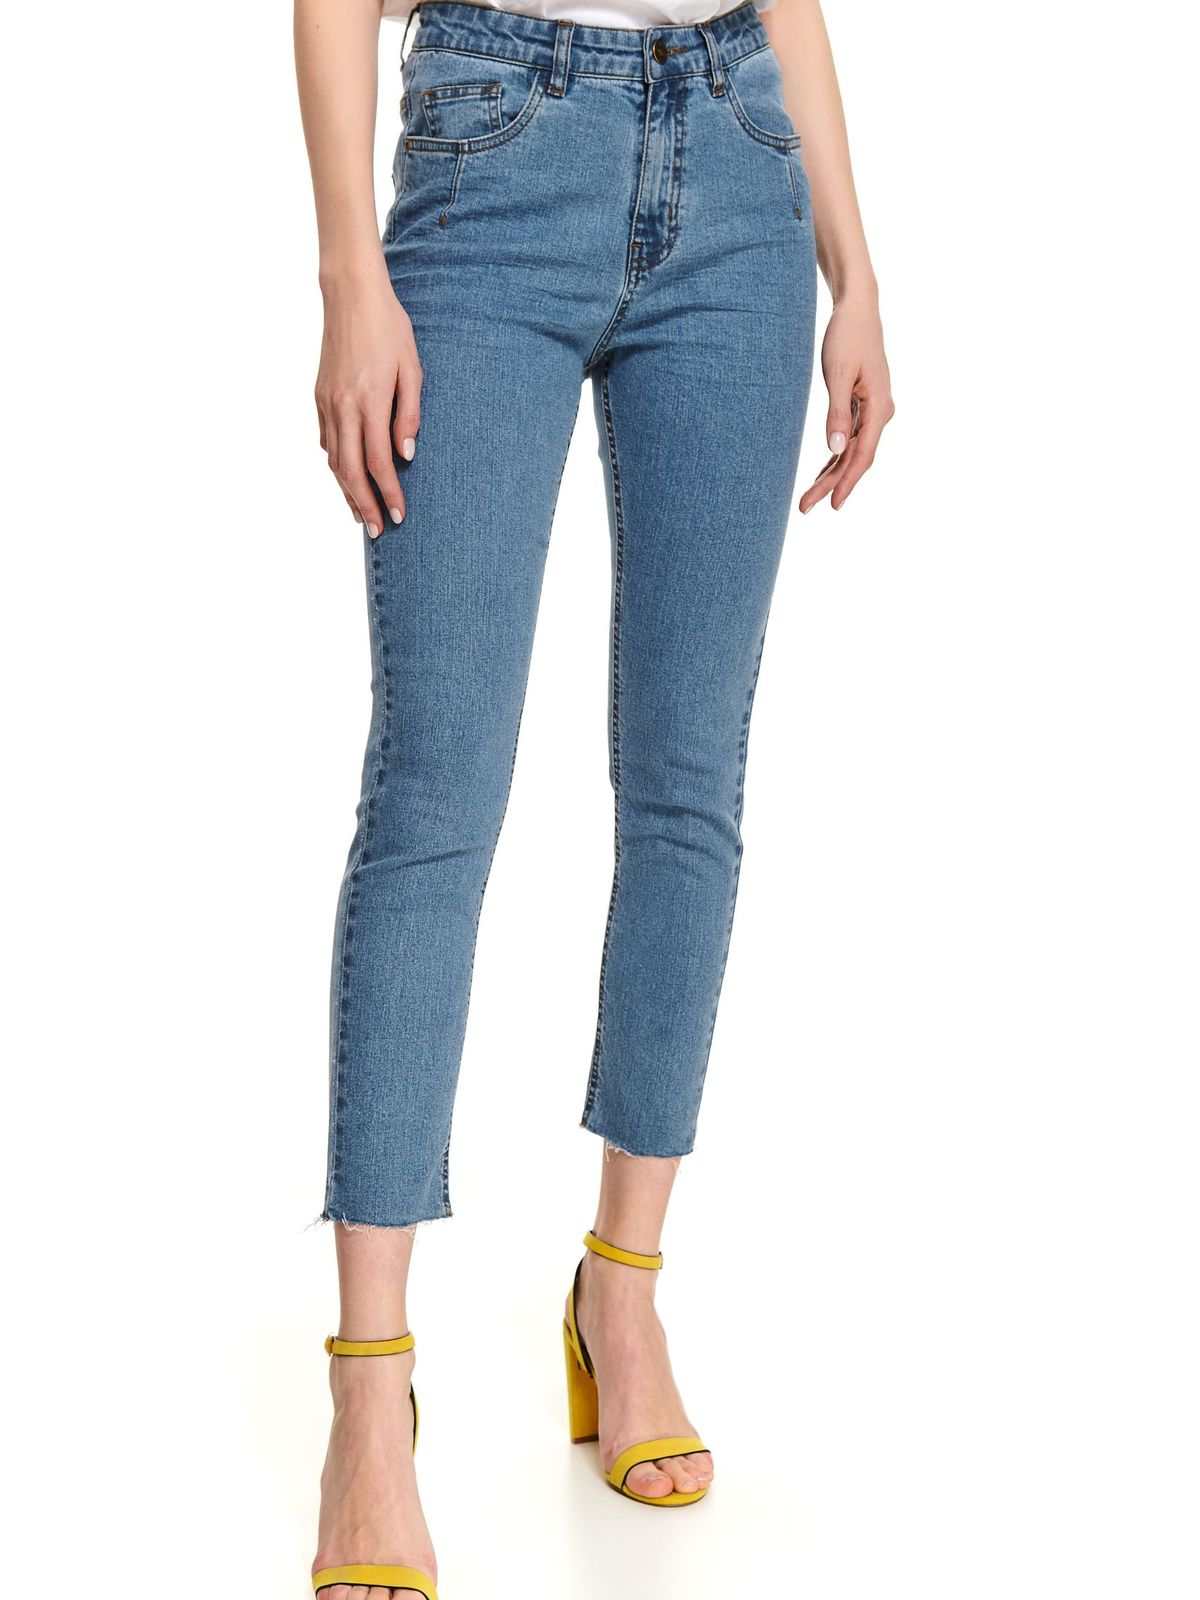 Blue trousers casual denim with tented cut high waisted